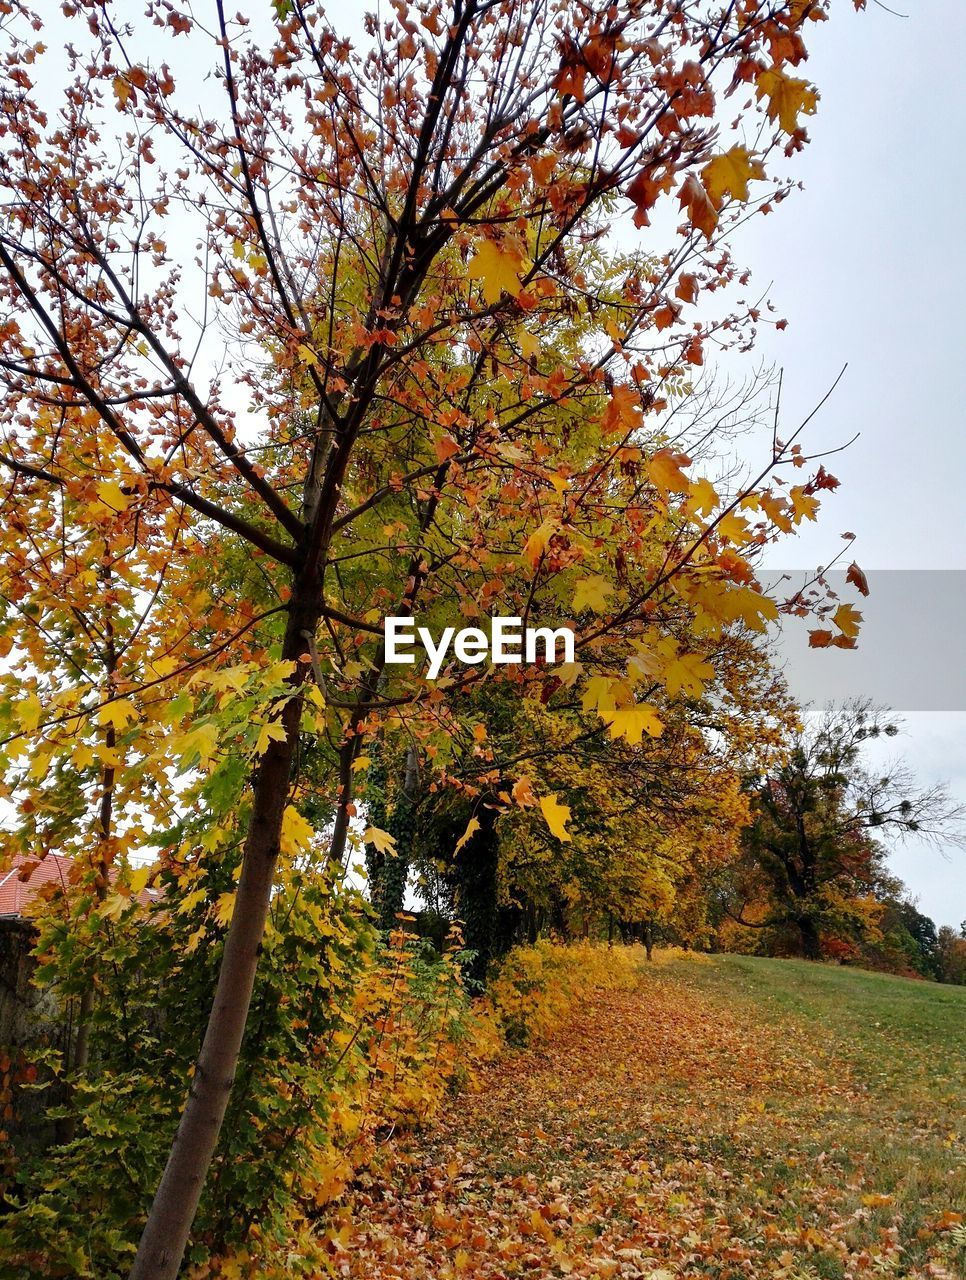 autumn, tree, change, plant, beauty in nature, orange color, nature, growth, leaf, tranquility, plant part, no people, sky, day, tranquil scene, land, scenics - nature, outdoors, branch, landscape, fall, autumn collection, natural condition, leaves